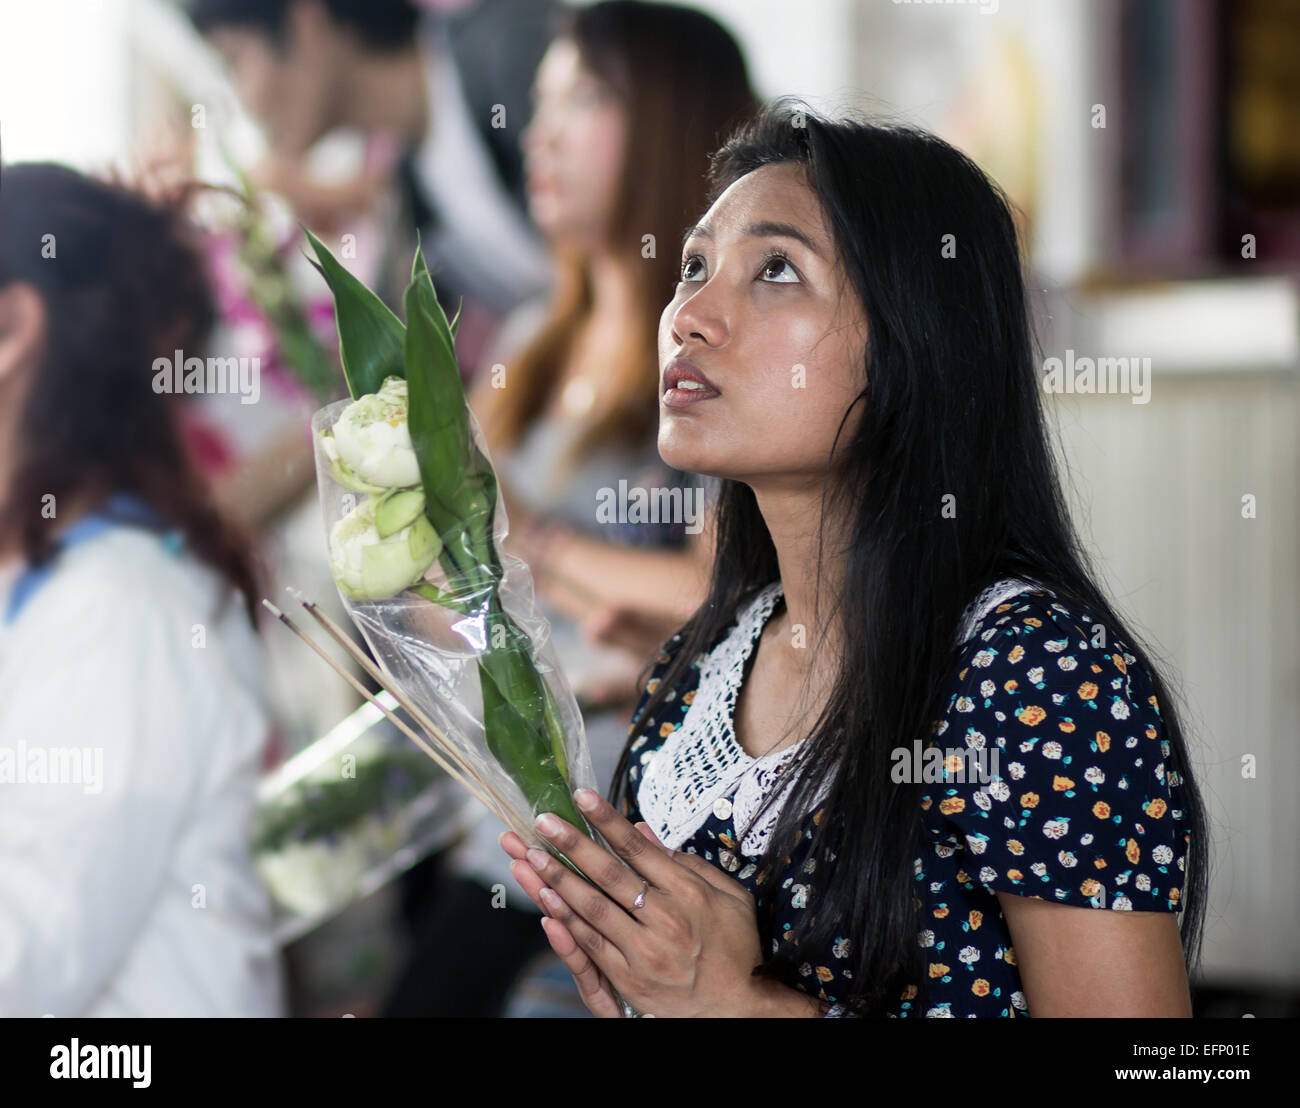 Young Asian woman fervently praying in a Buddhist monastery - Stock Image